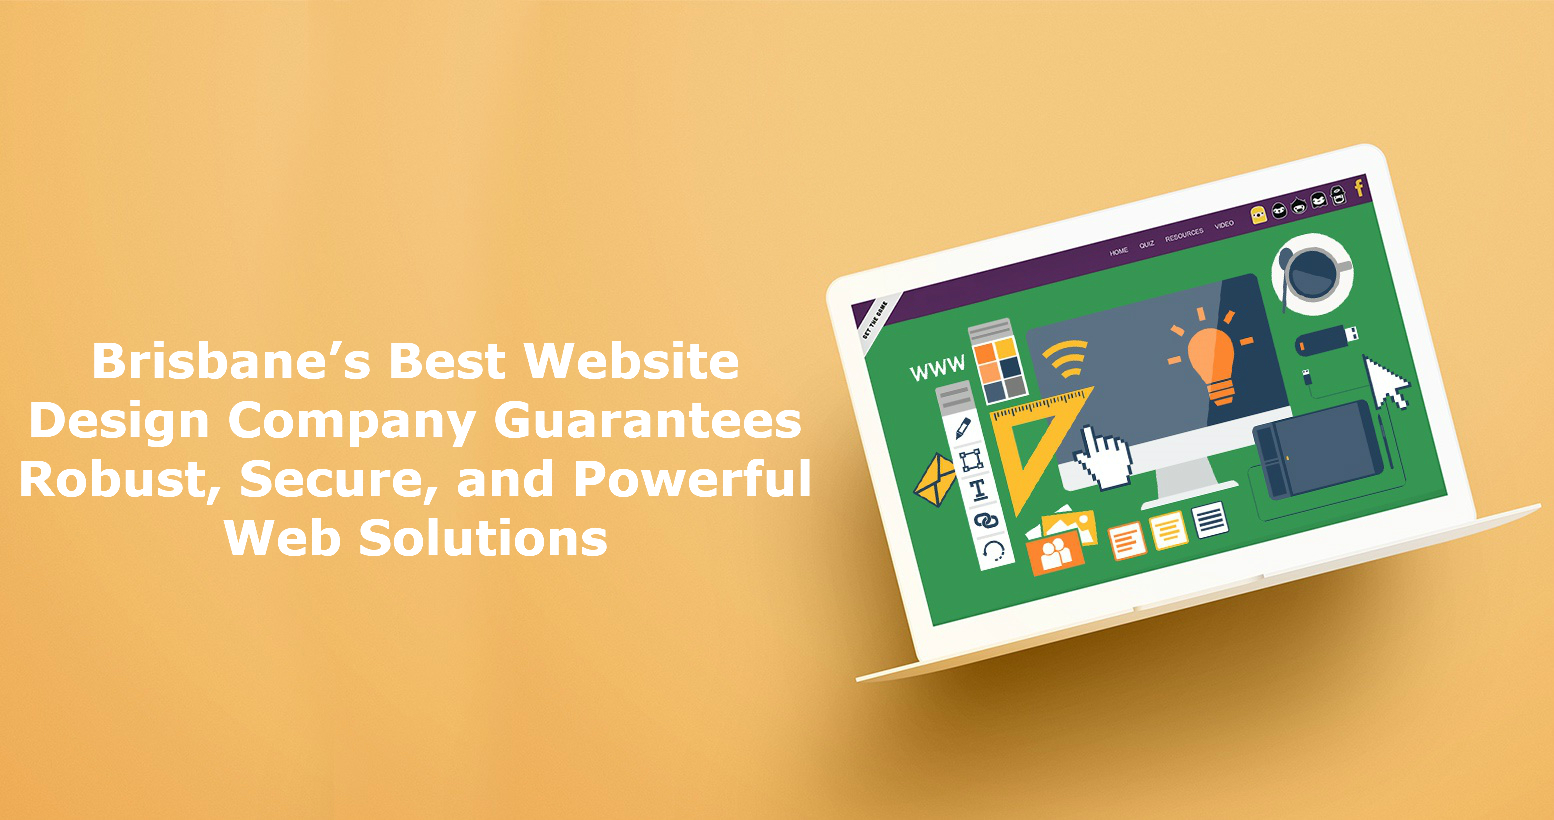 Brisbane's Best Website Design Company Guarantees Robust, Secure, and Powerful Web Solutions